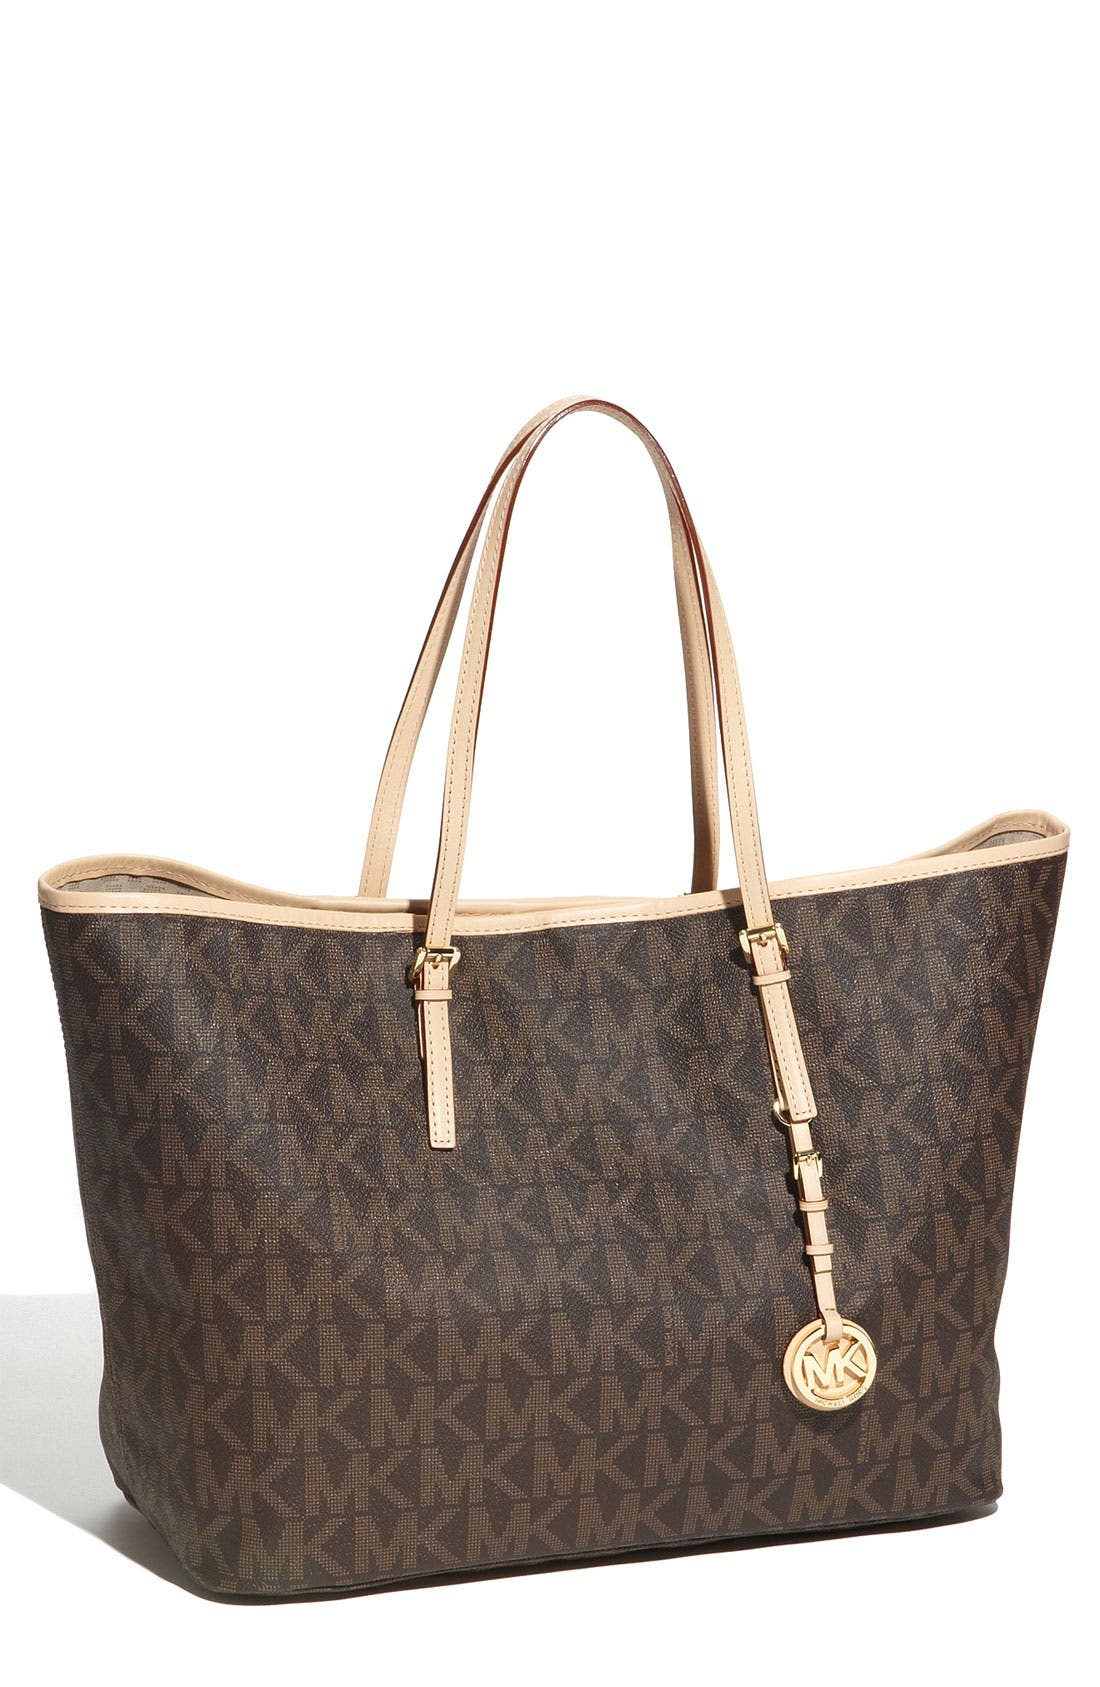 Main Image - MICHAEL Michael Kors 'Jet Set - Medium' Travel Tote